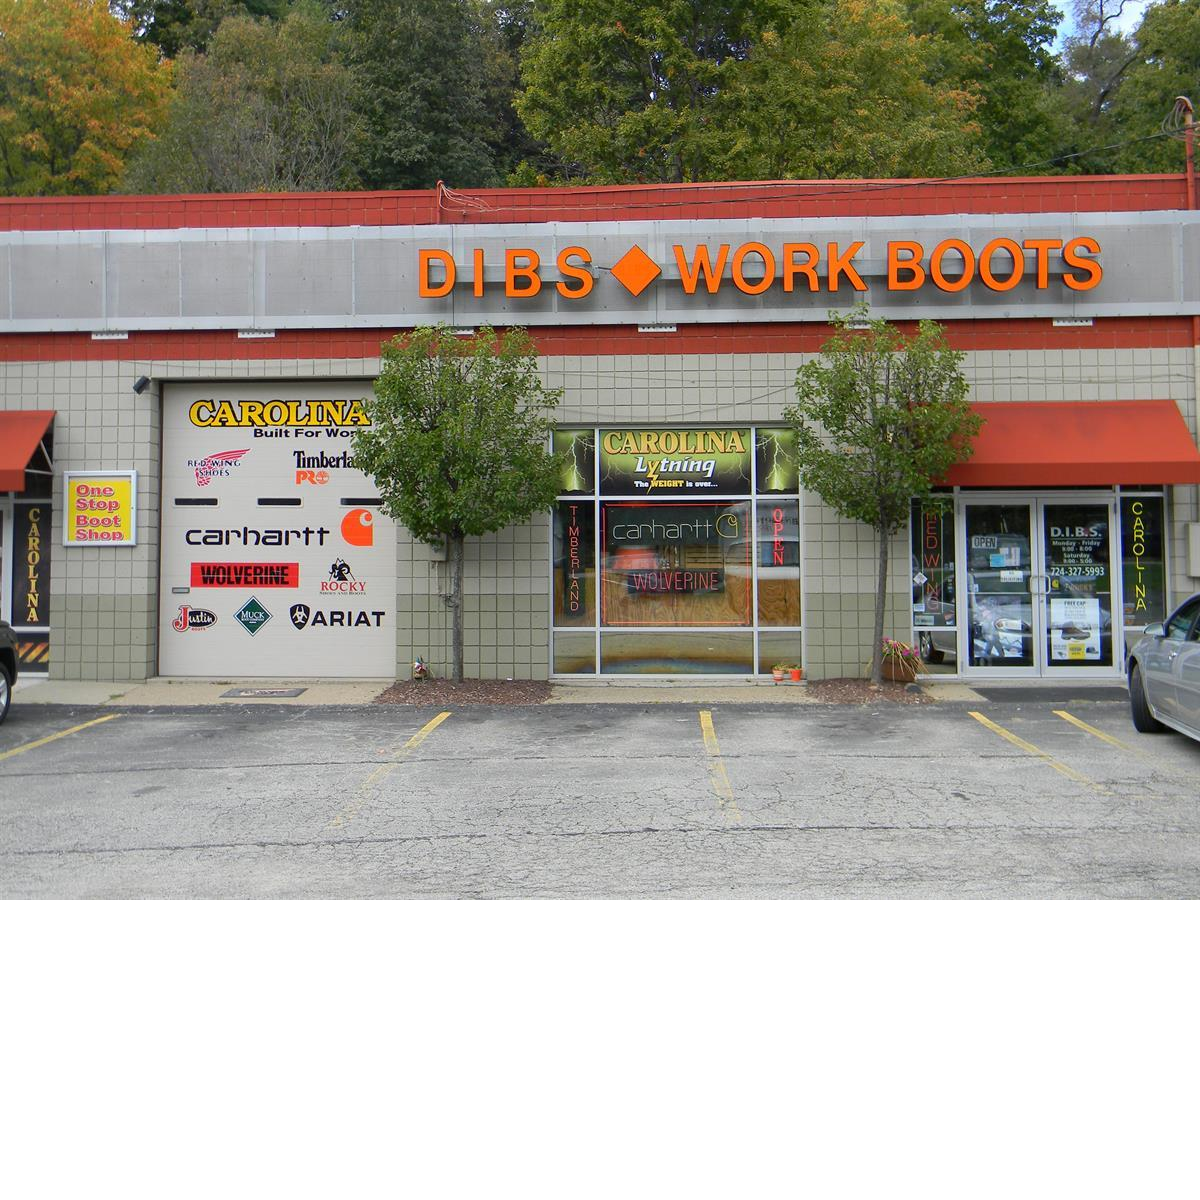 DIBS Storefront Route 286 Plum, PA